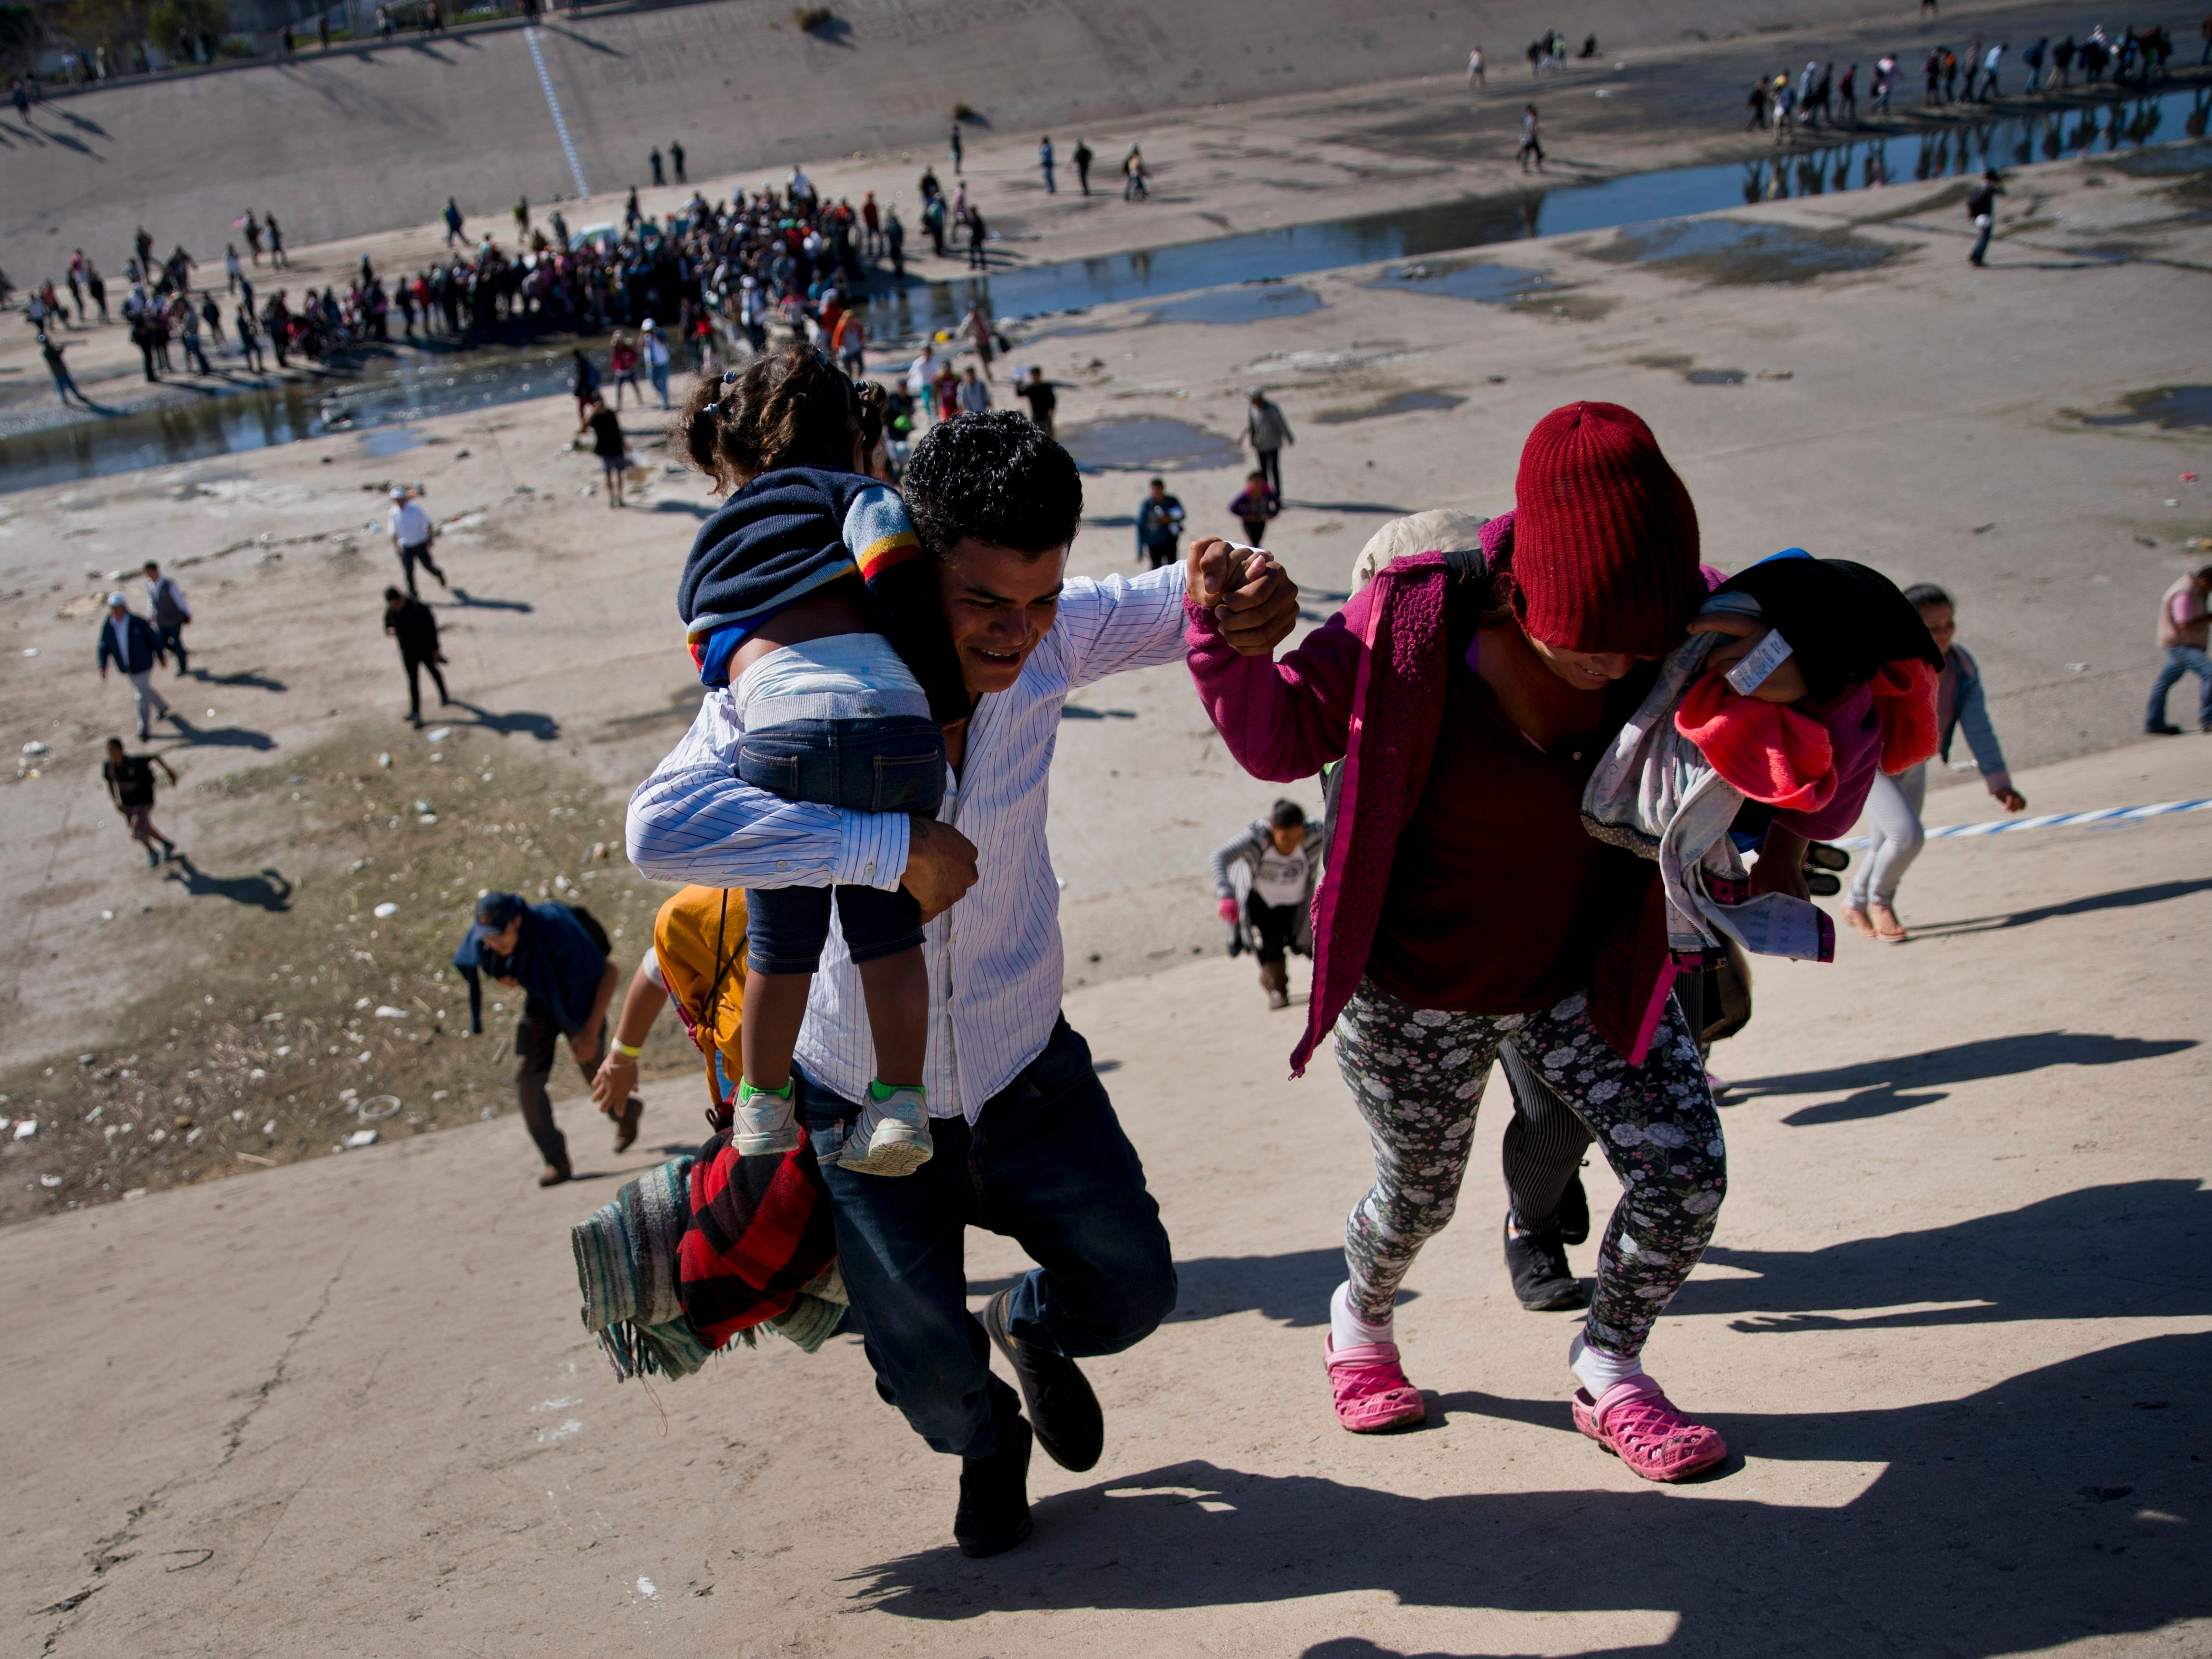 Migrants walk up a riverbank at the Mexico-U.S. border after pushing past a line of Mexican police at the Chaparral border crossing in Tijuana, Mexico, on Nov. 25, 2018, as they try to reach the U.S.